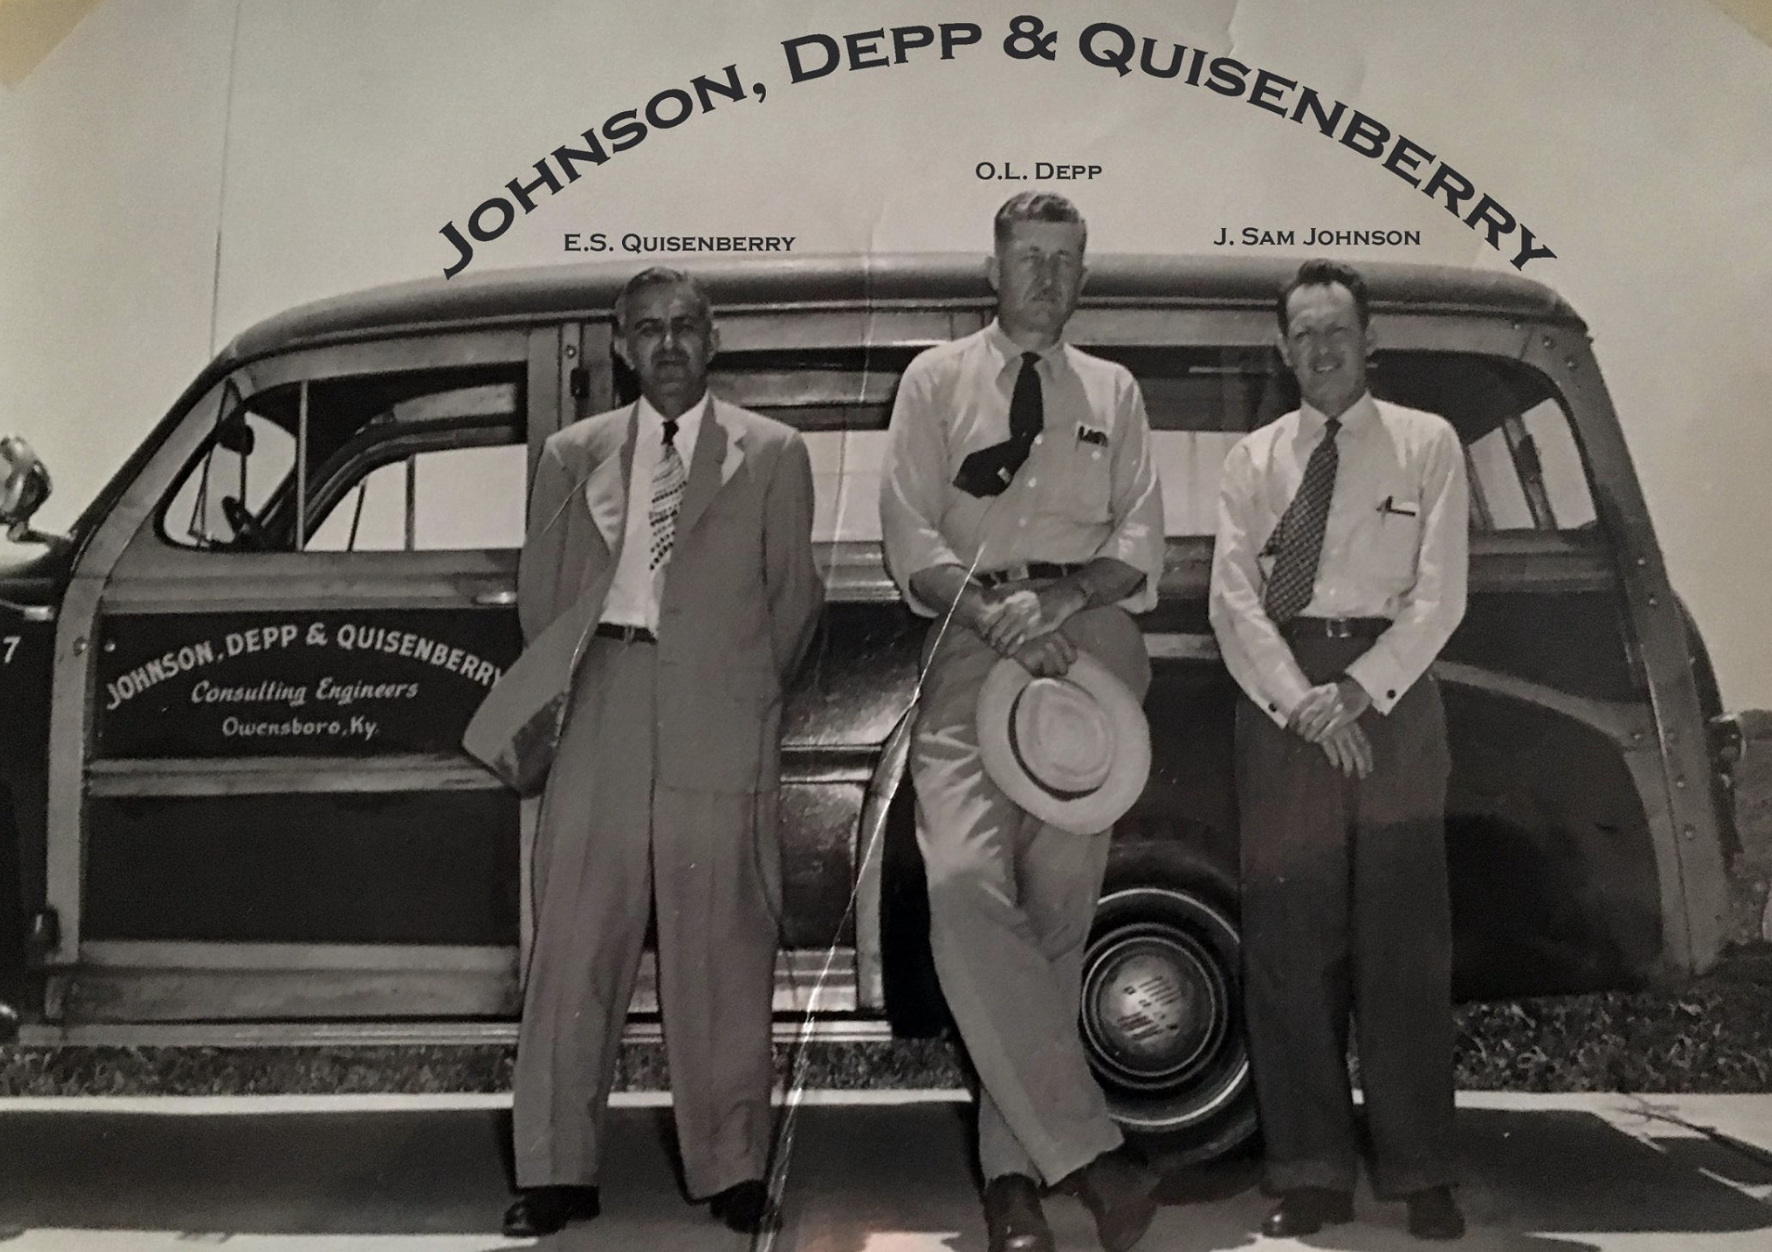 The Founders of Johnson, Depp & Quisenberry. This photo was taken at the opening of the Owensboro-Daviess County Airport. Johnson, Depp & Quisenberry engineered the airport.